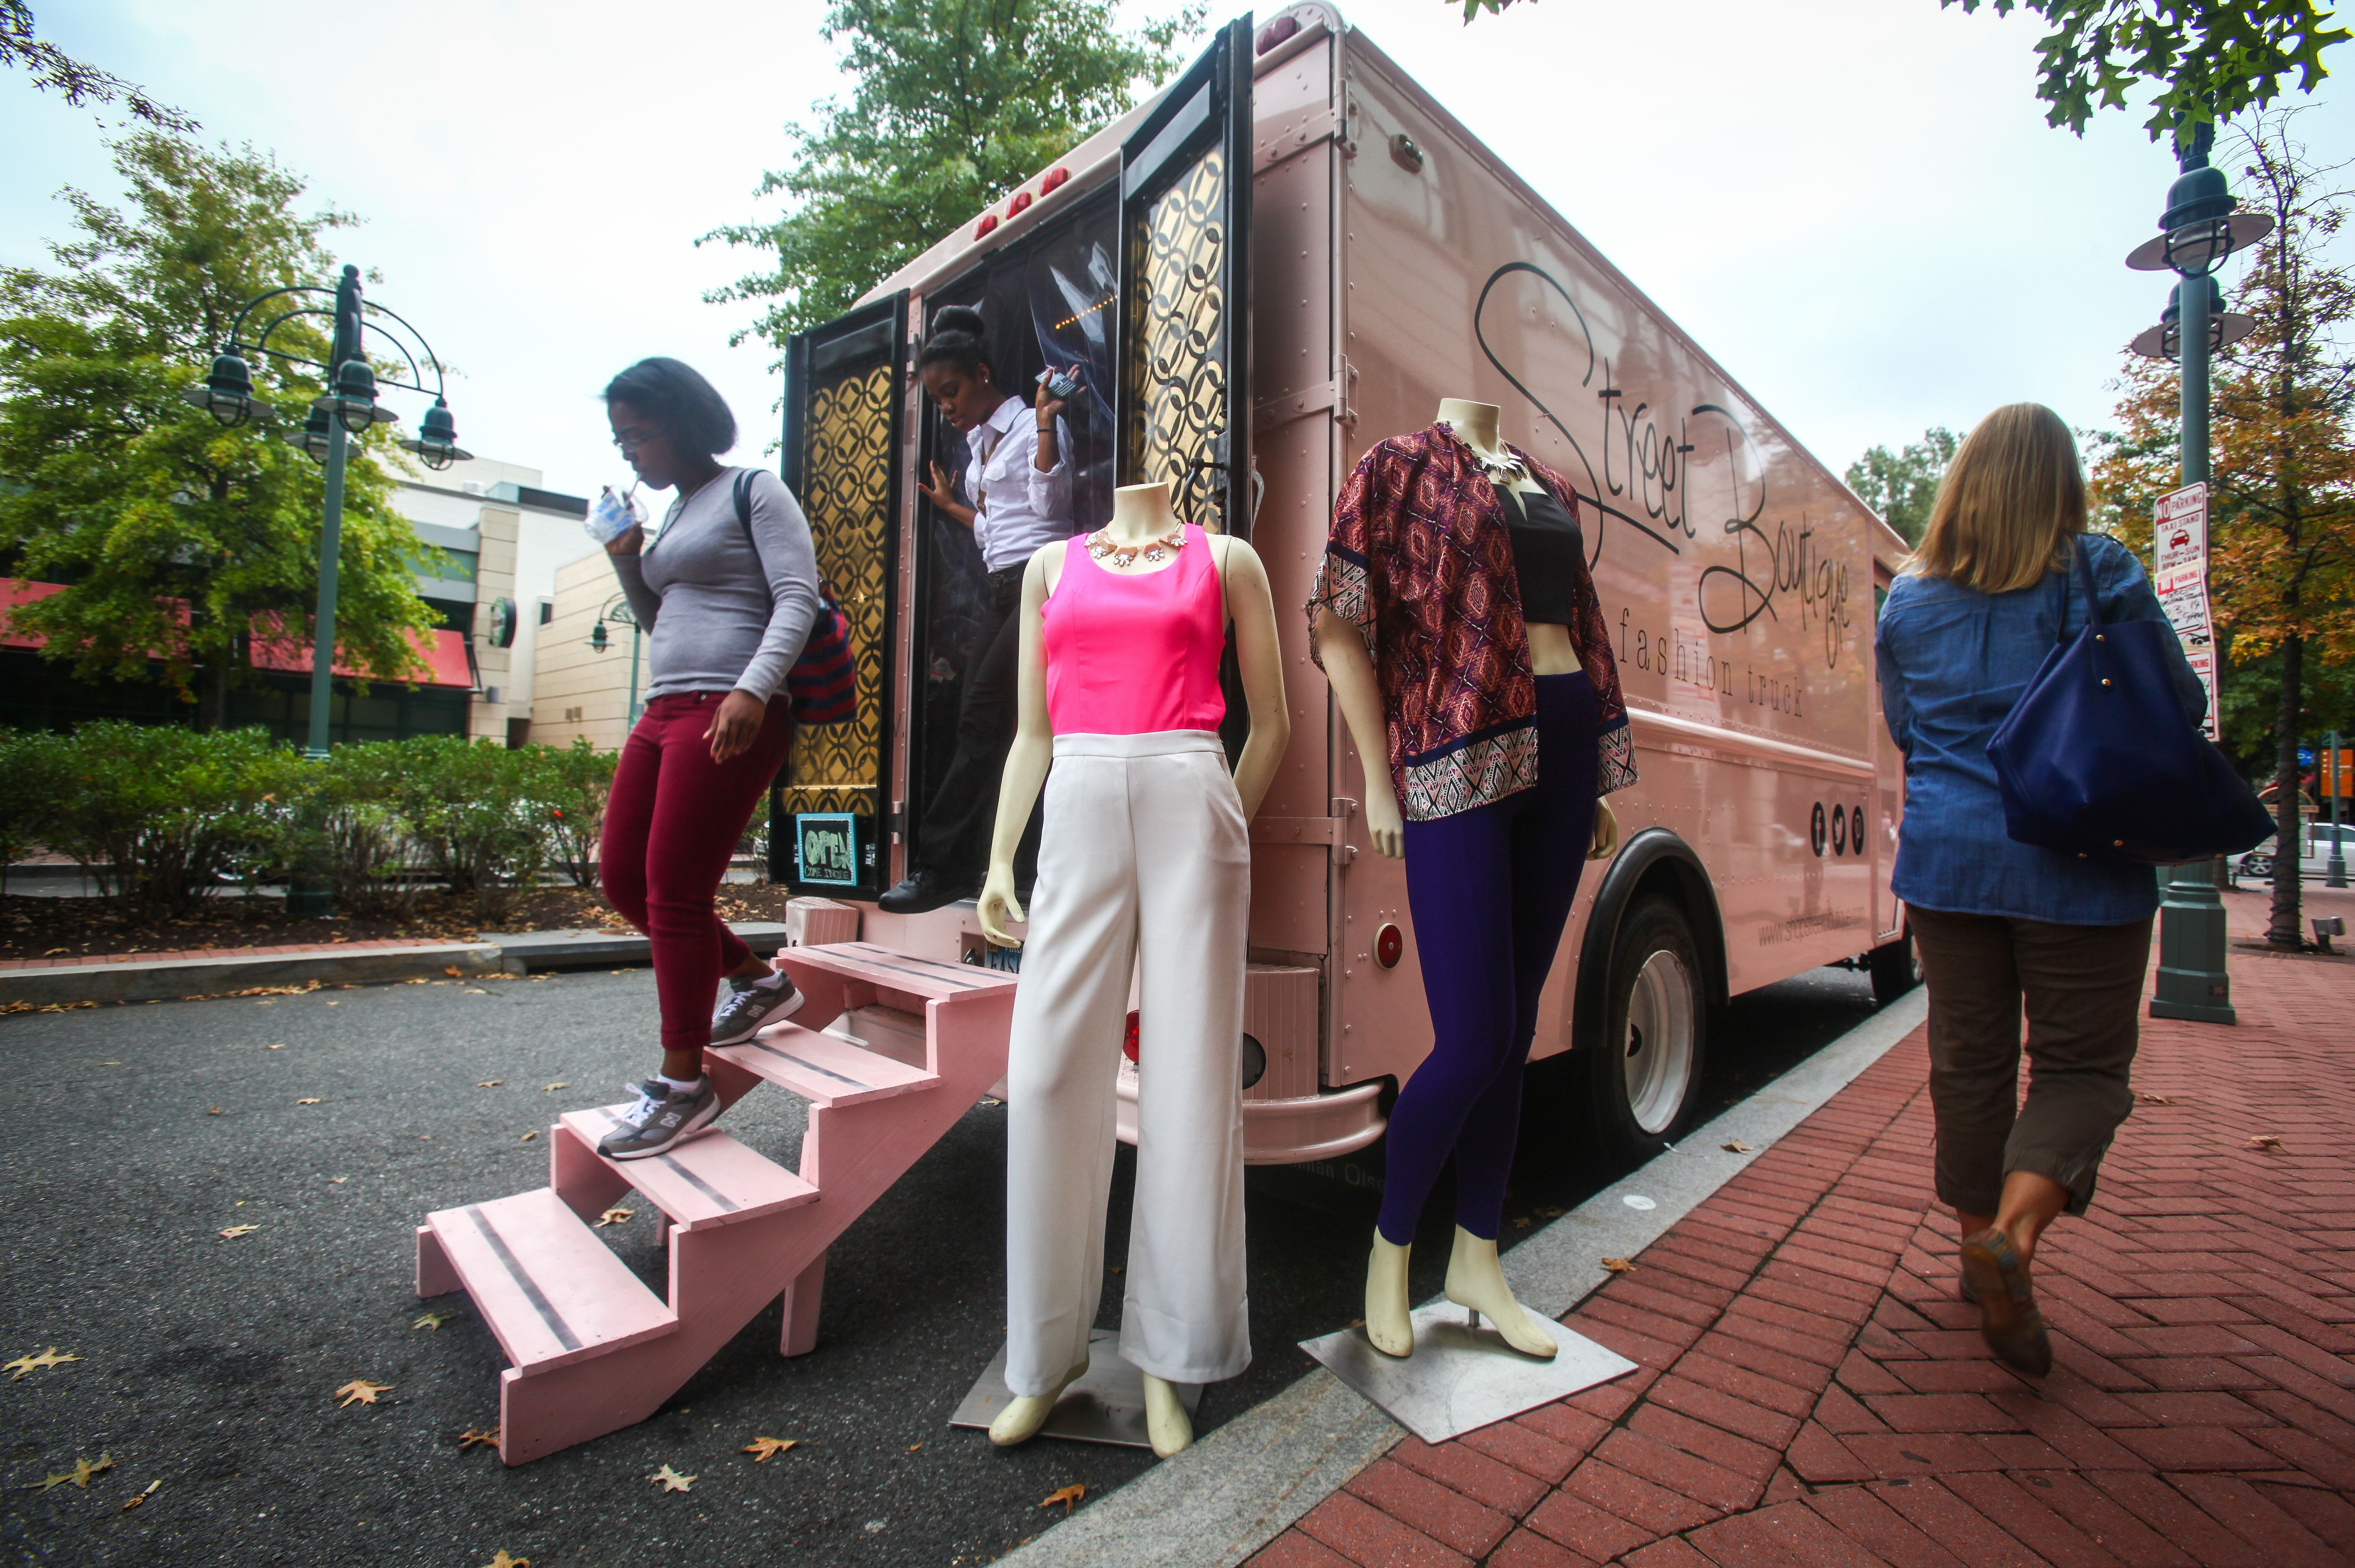 most creative truck/pop up business - Google Search